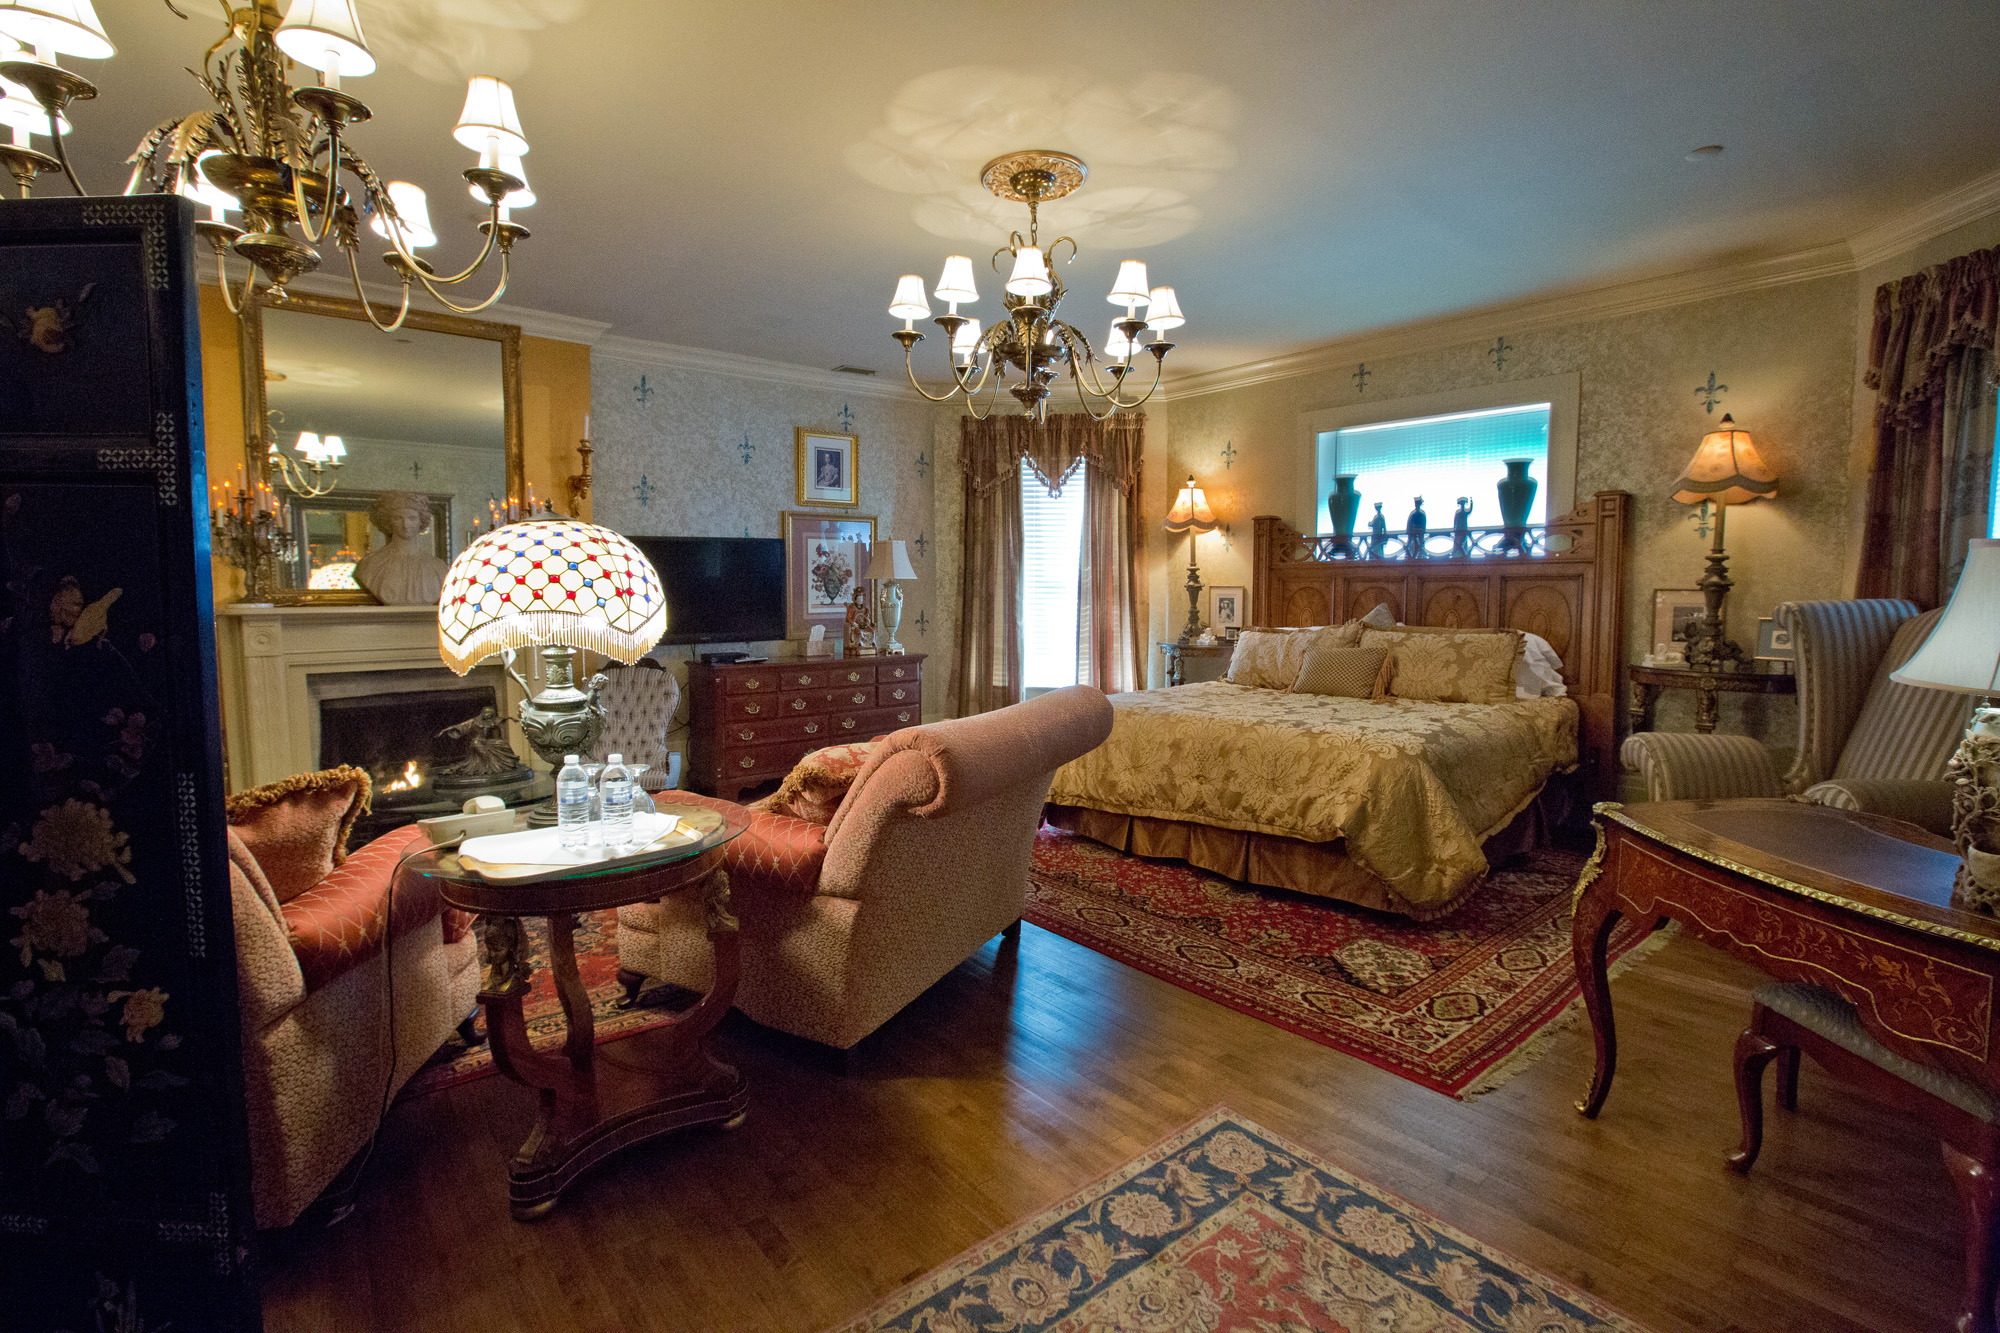 Room 5 - The Master Suite - $225 per night